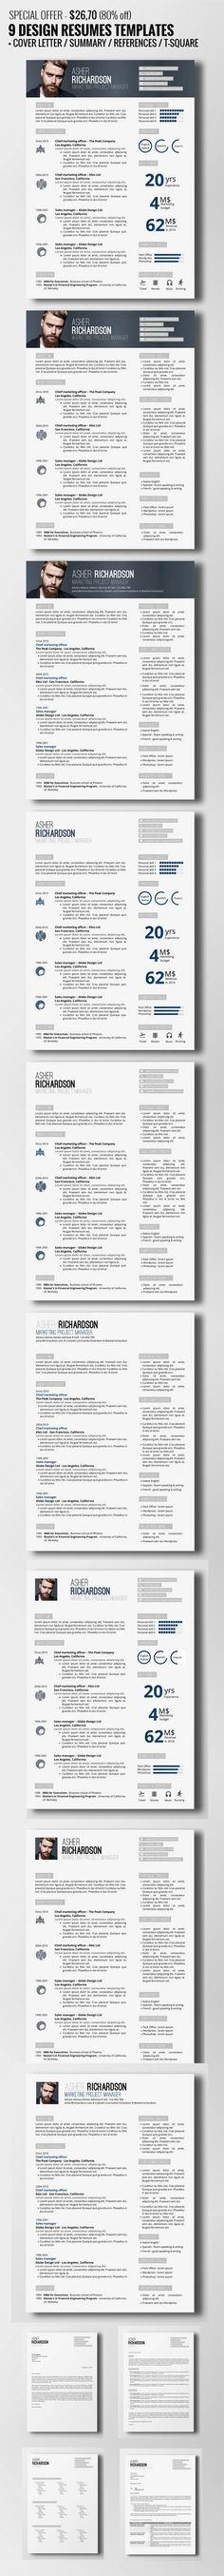 435 best Resume images on Pinterest Resume design, Design resume - fashion designer resume samples